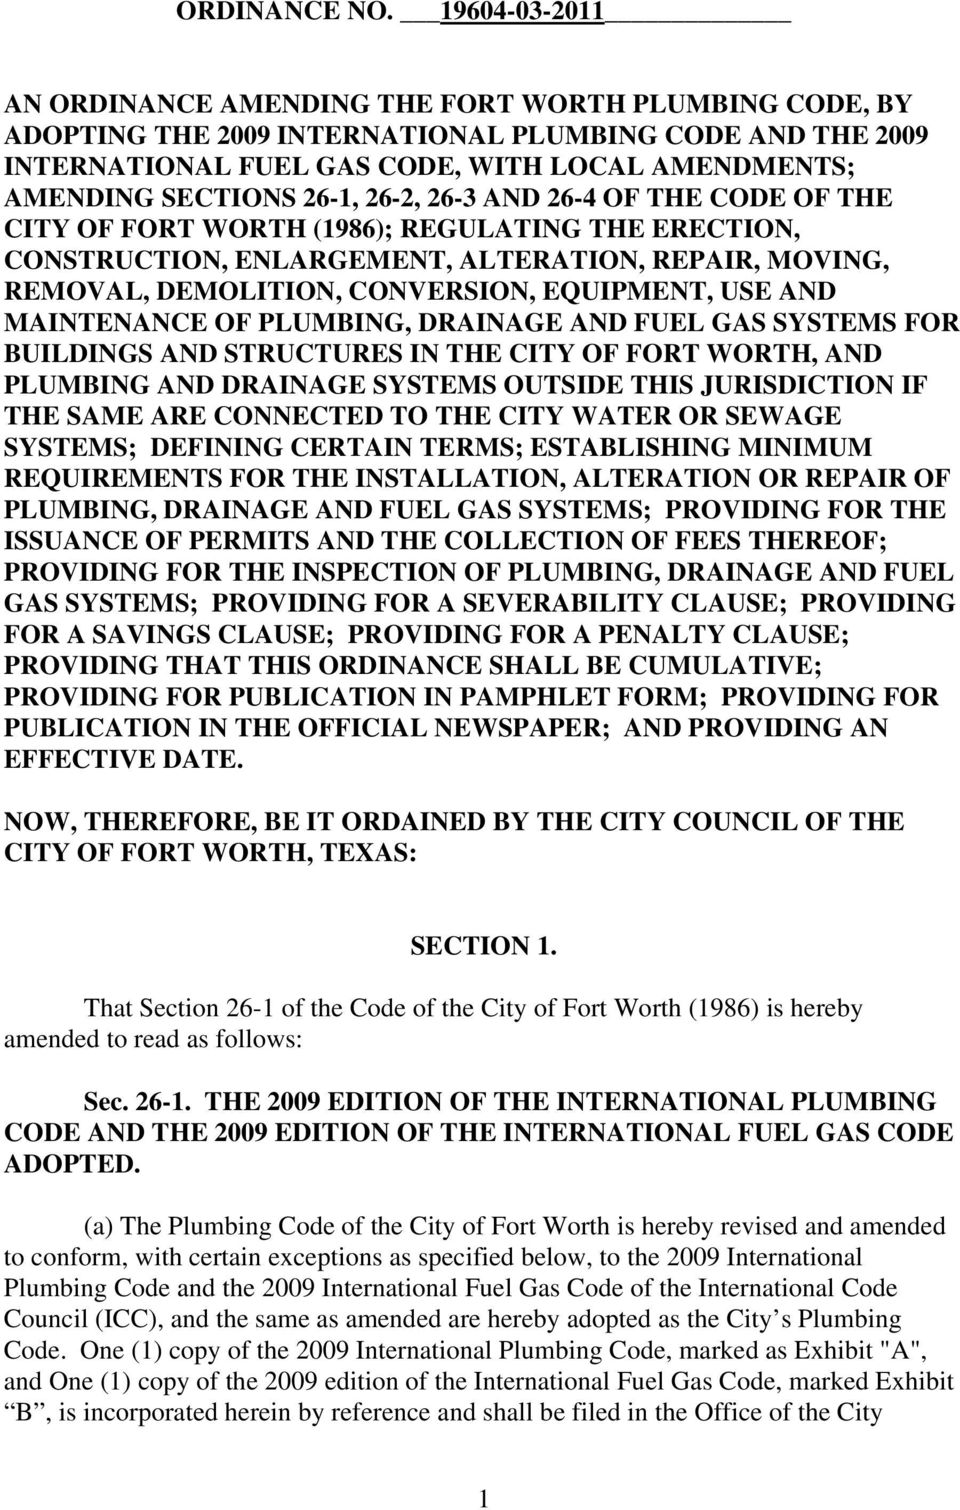 26-1, 26-2, 26-3 AND 26-4 OF THE CODE OF THE CITY OF FORT WORTH (1986); REGULATING THE ERECTION, CONSTRUCTION, ENLARGEMENT, ALTERATION, REPAIR, MOVING, REMOVAL, DEMOLITION, CONVERSION, EQUIPMENT, USE